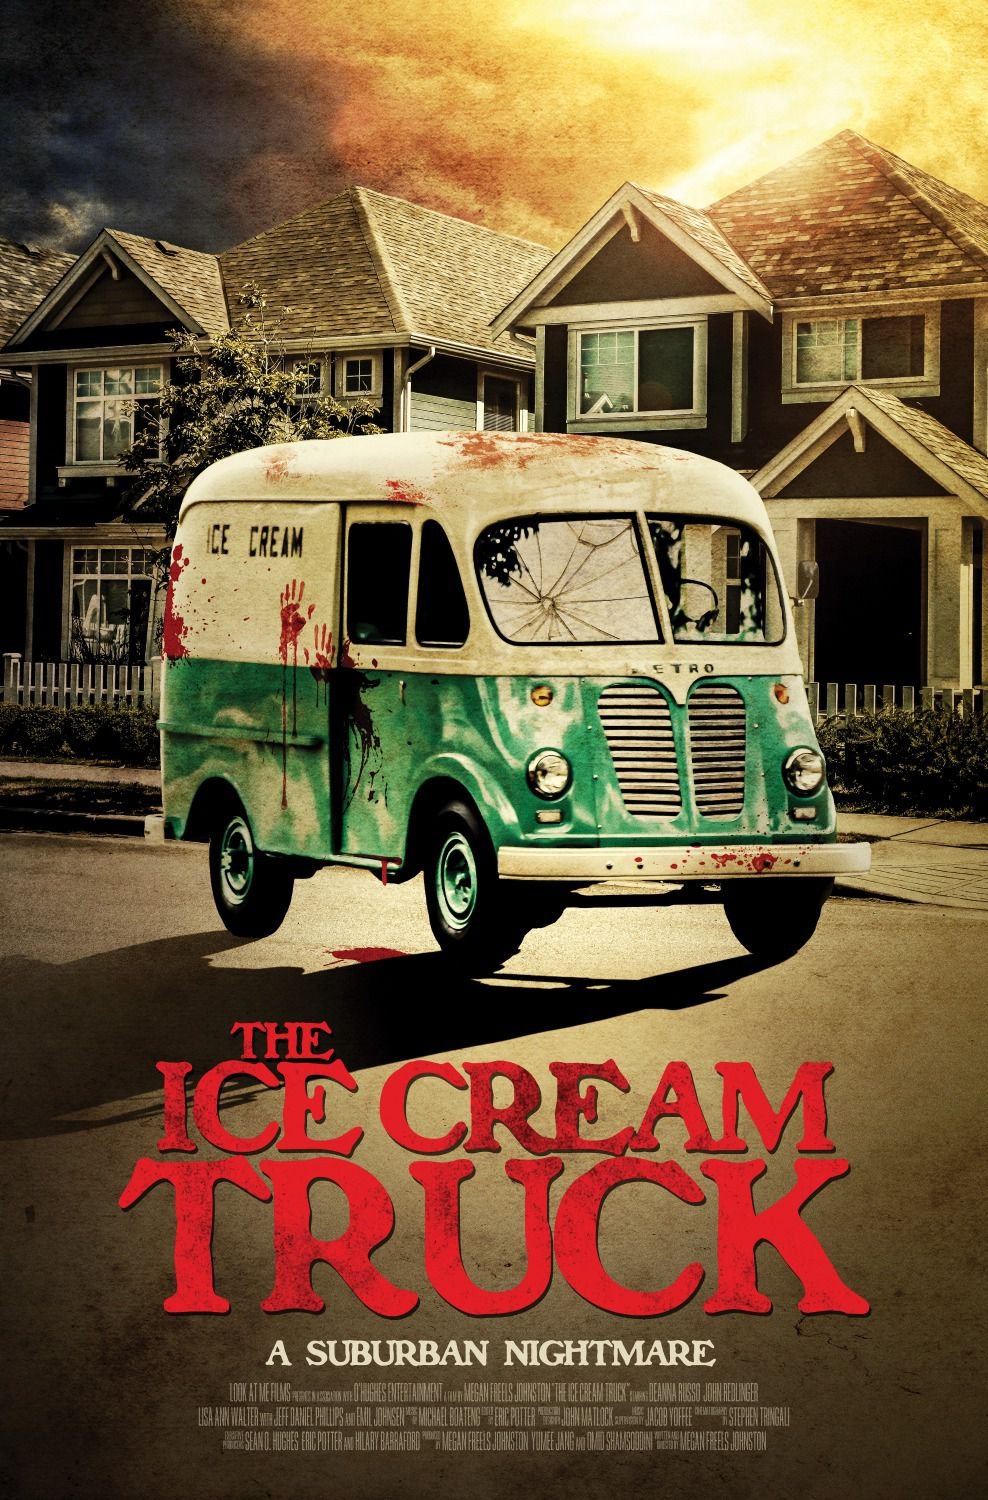 Ice Cream Truck - suburban nightmare - horror poster